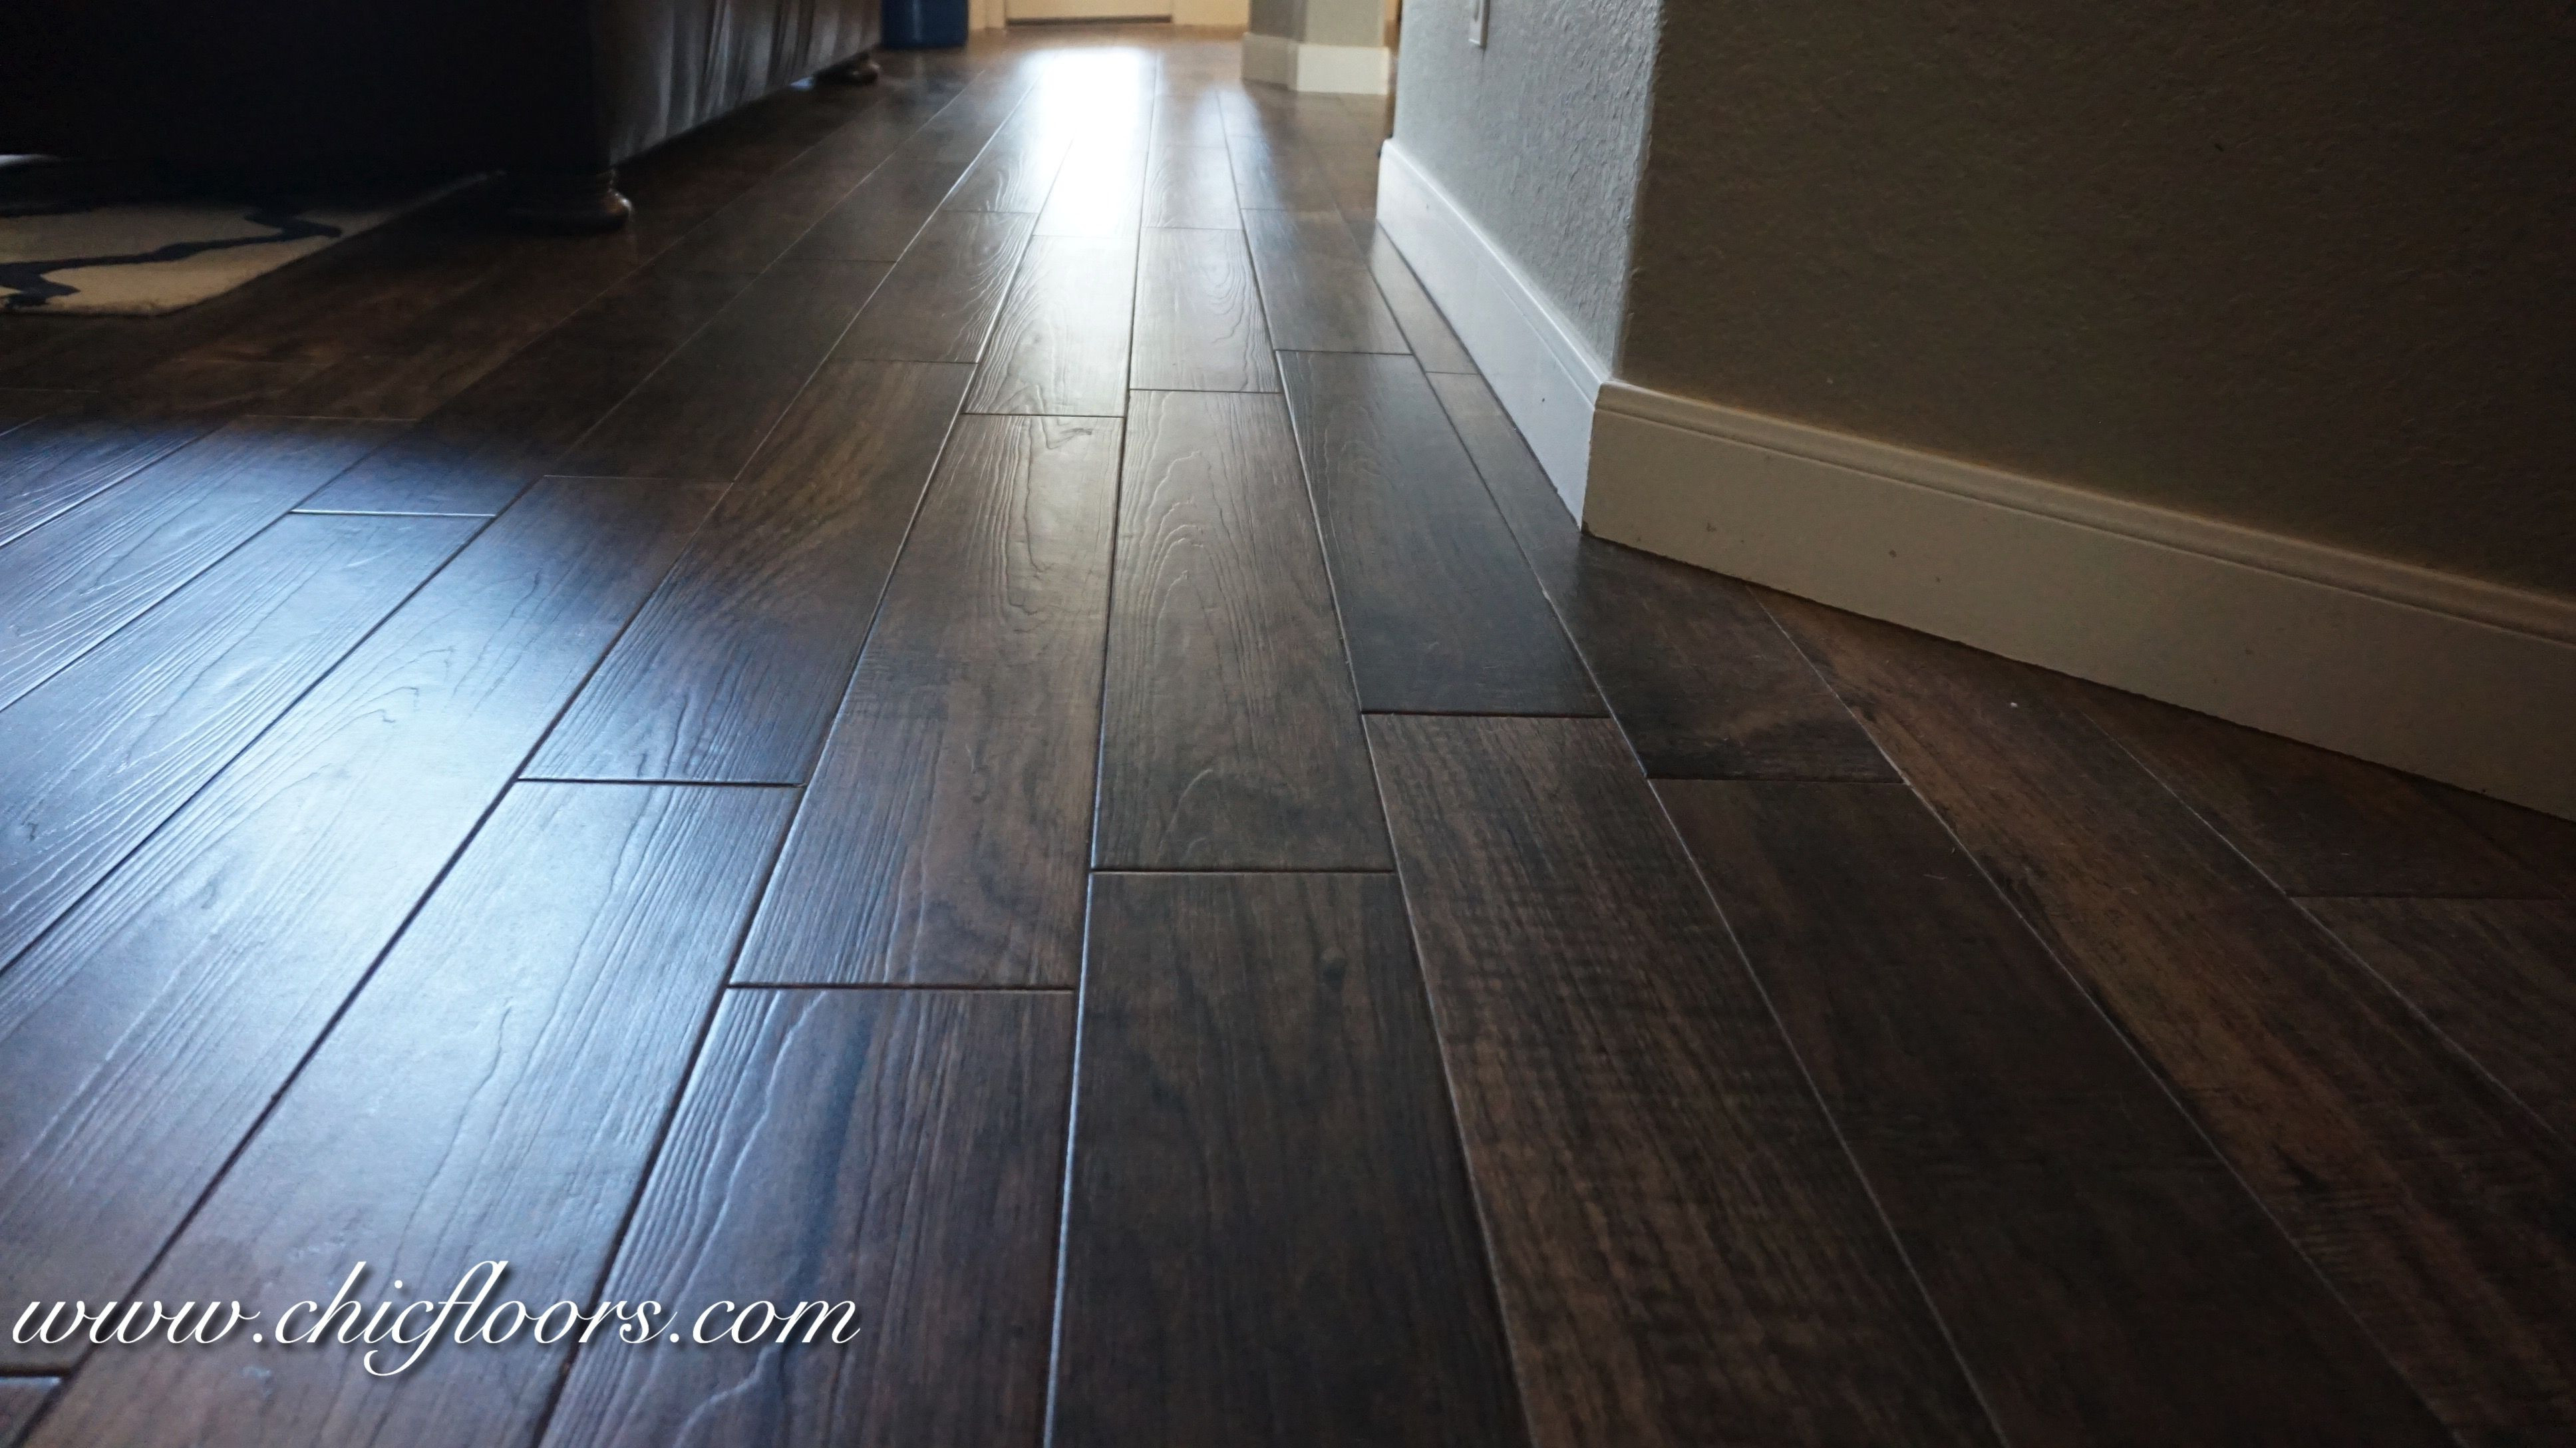 Acacia Engineered Hardwood Flooring Reviews Of Beautiful Wood Look Tile by Shaw Hacienda Color Walnut Our Work Intended for Beautiful Wood Look Tile by Shaw Hacienda Color Walnut Wood Look Tile Flooring Ideas